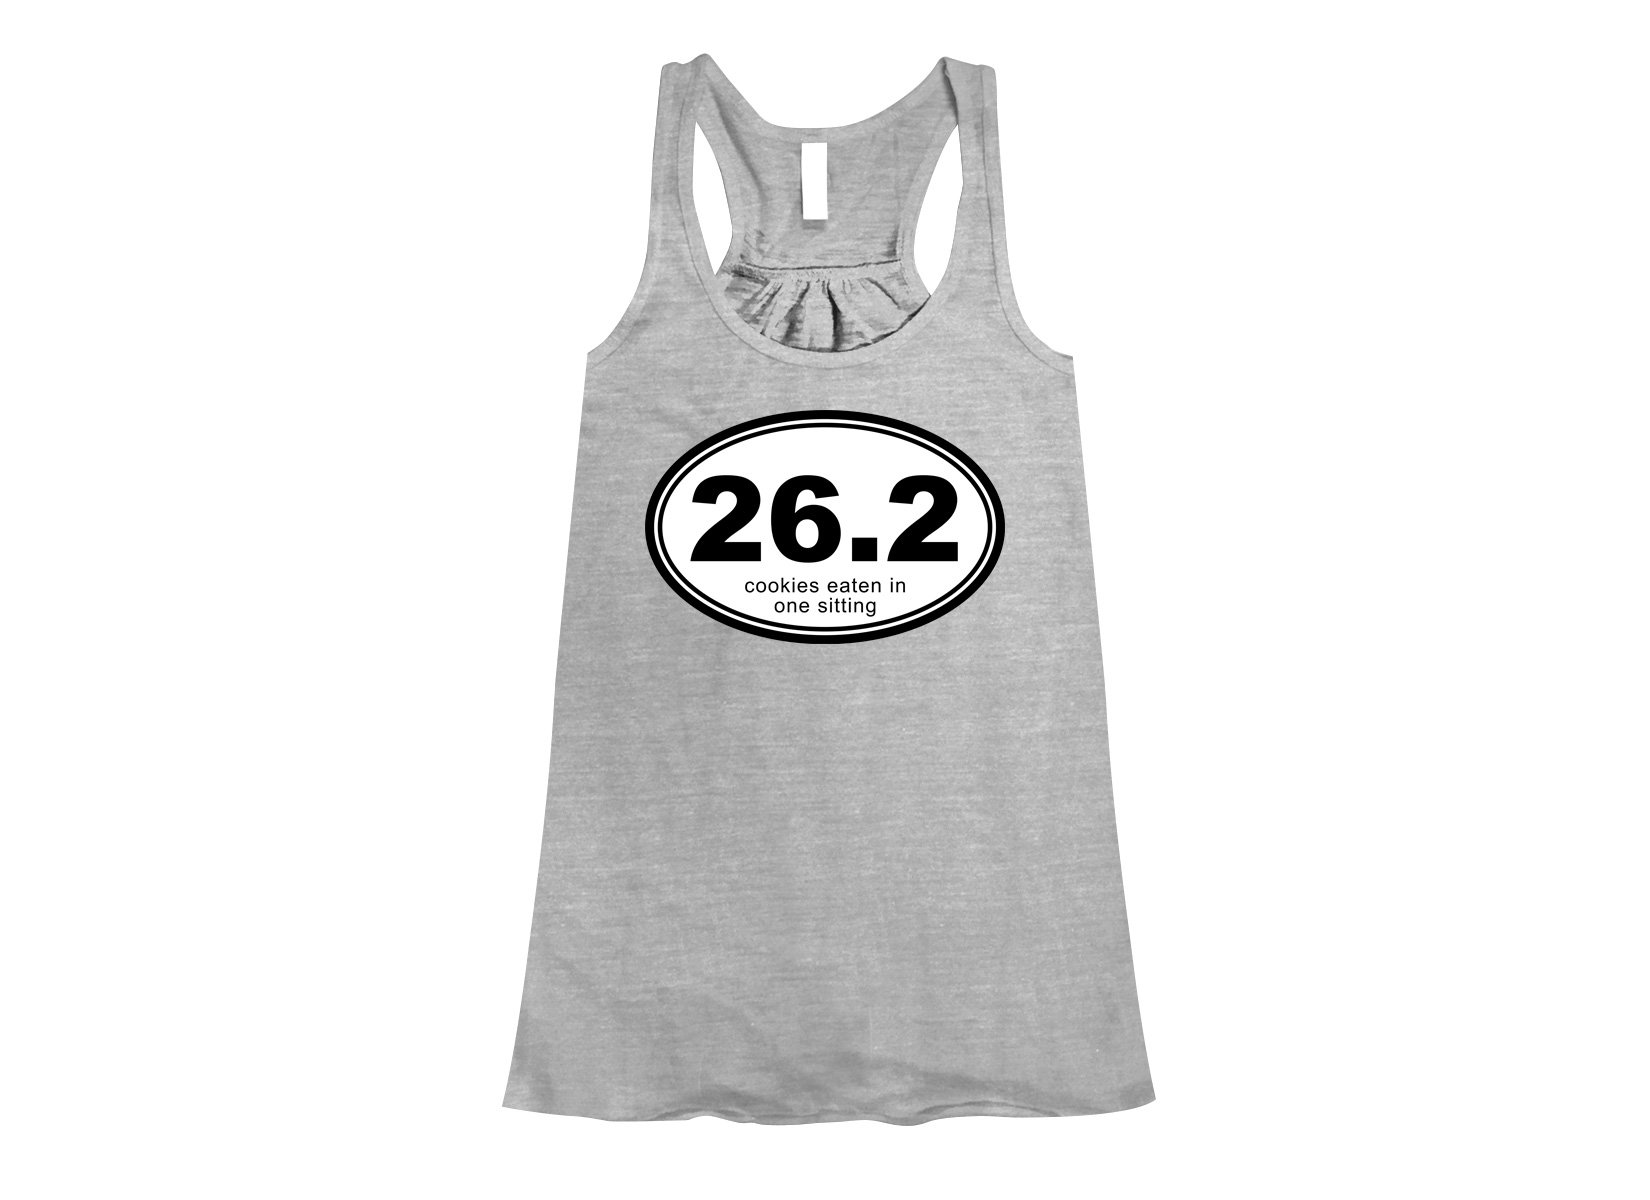 26.2 Cookies Eaten In One Sitting on Womens Tanks T-Shirt